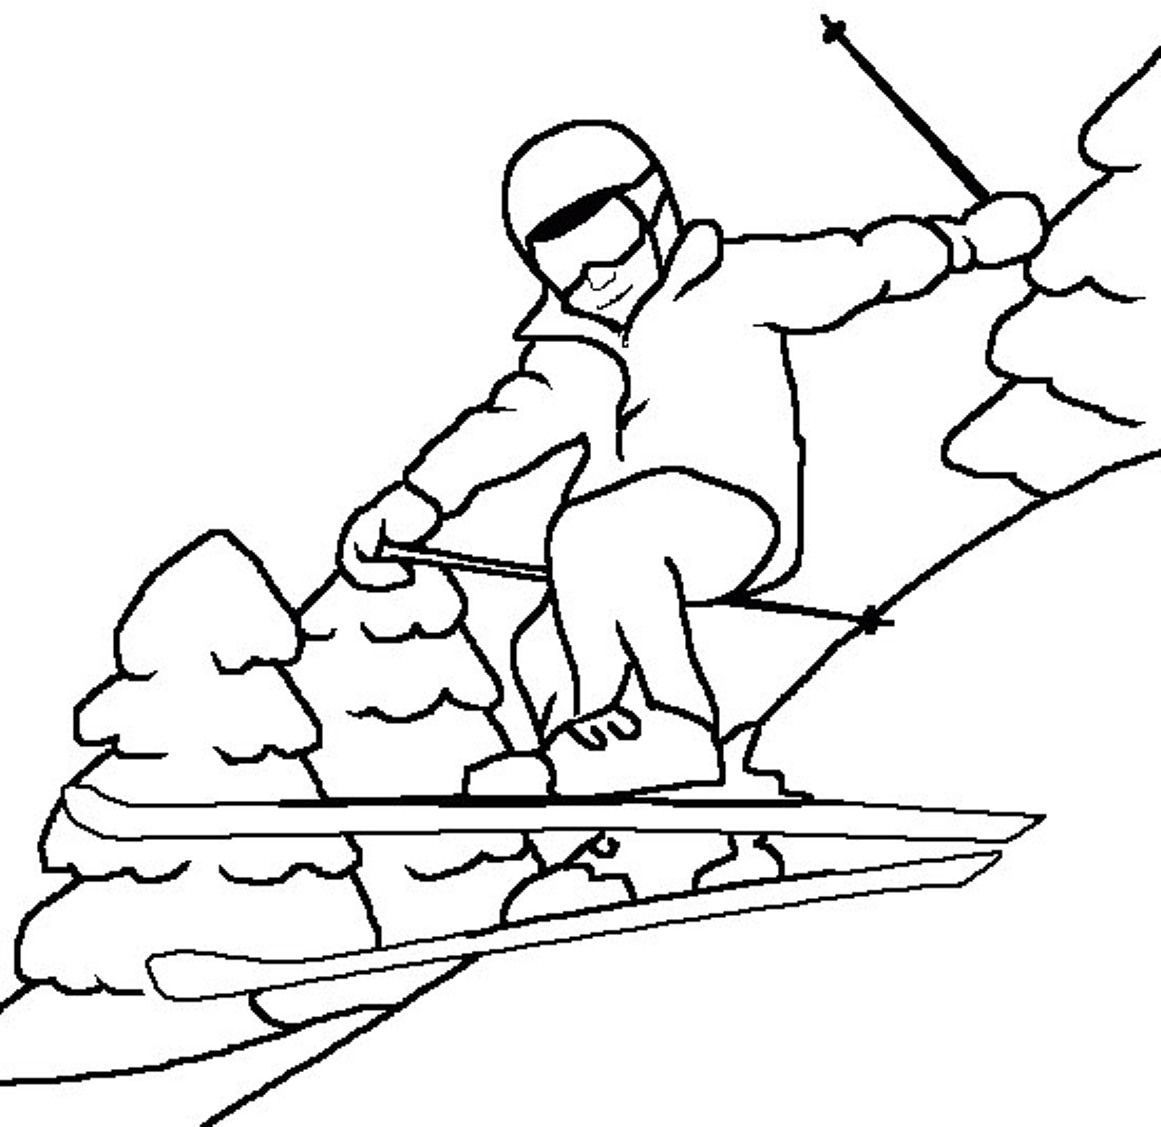 Winter Skiing Coloring Id 44697 Uncategorized Yoand Biz Sports Coloring Pages Coloring Pages Coloring Pages For Kids